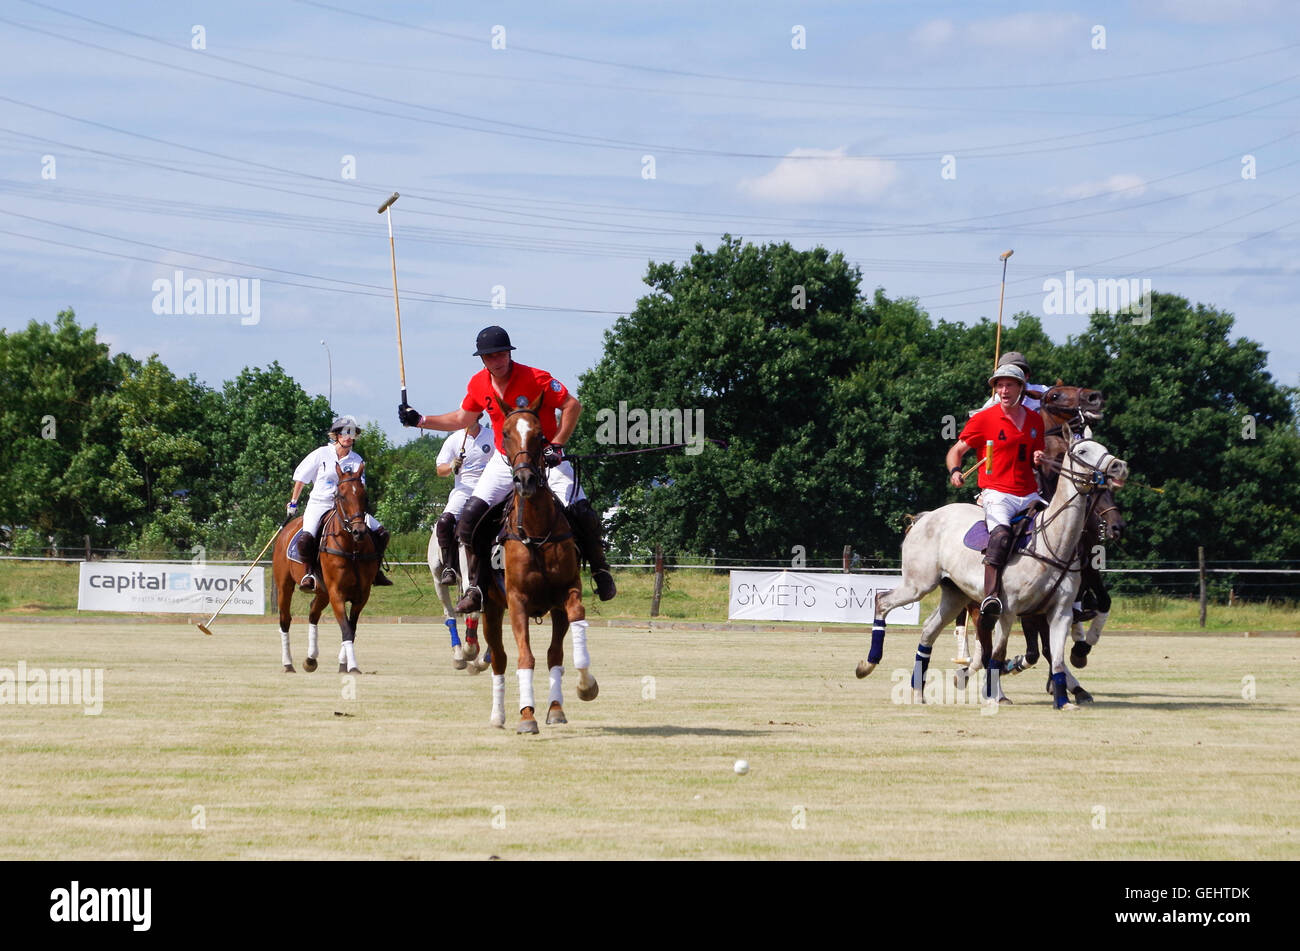 Polo players galloping towards the ball during a tournament in Luxembourg, 2016 - Stock Image